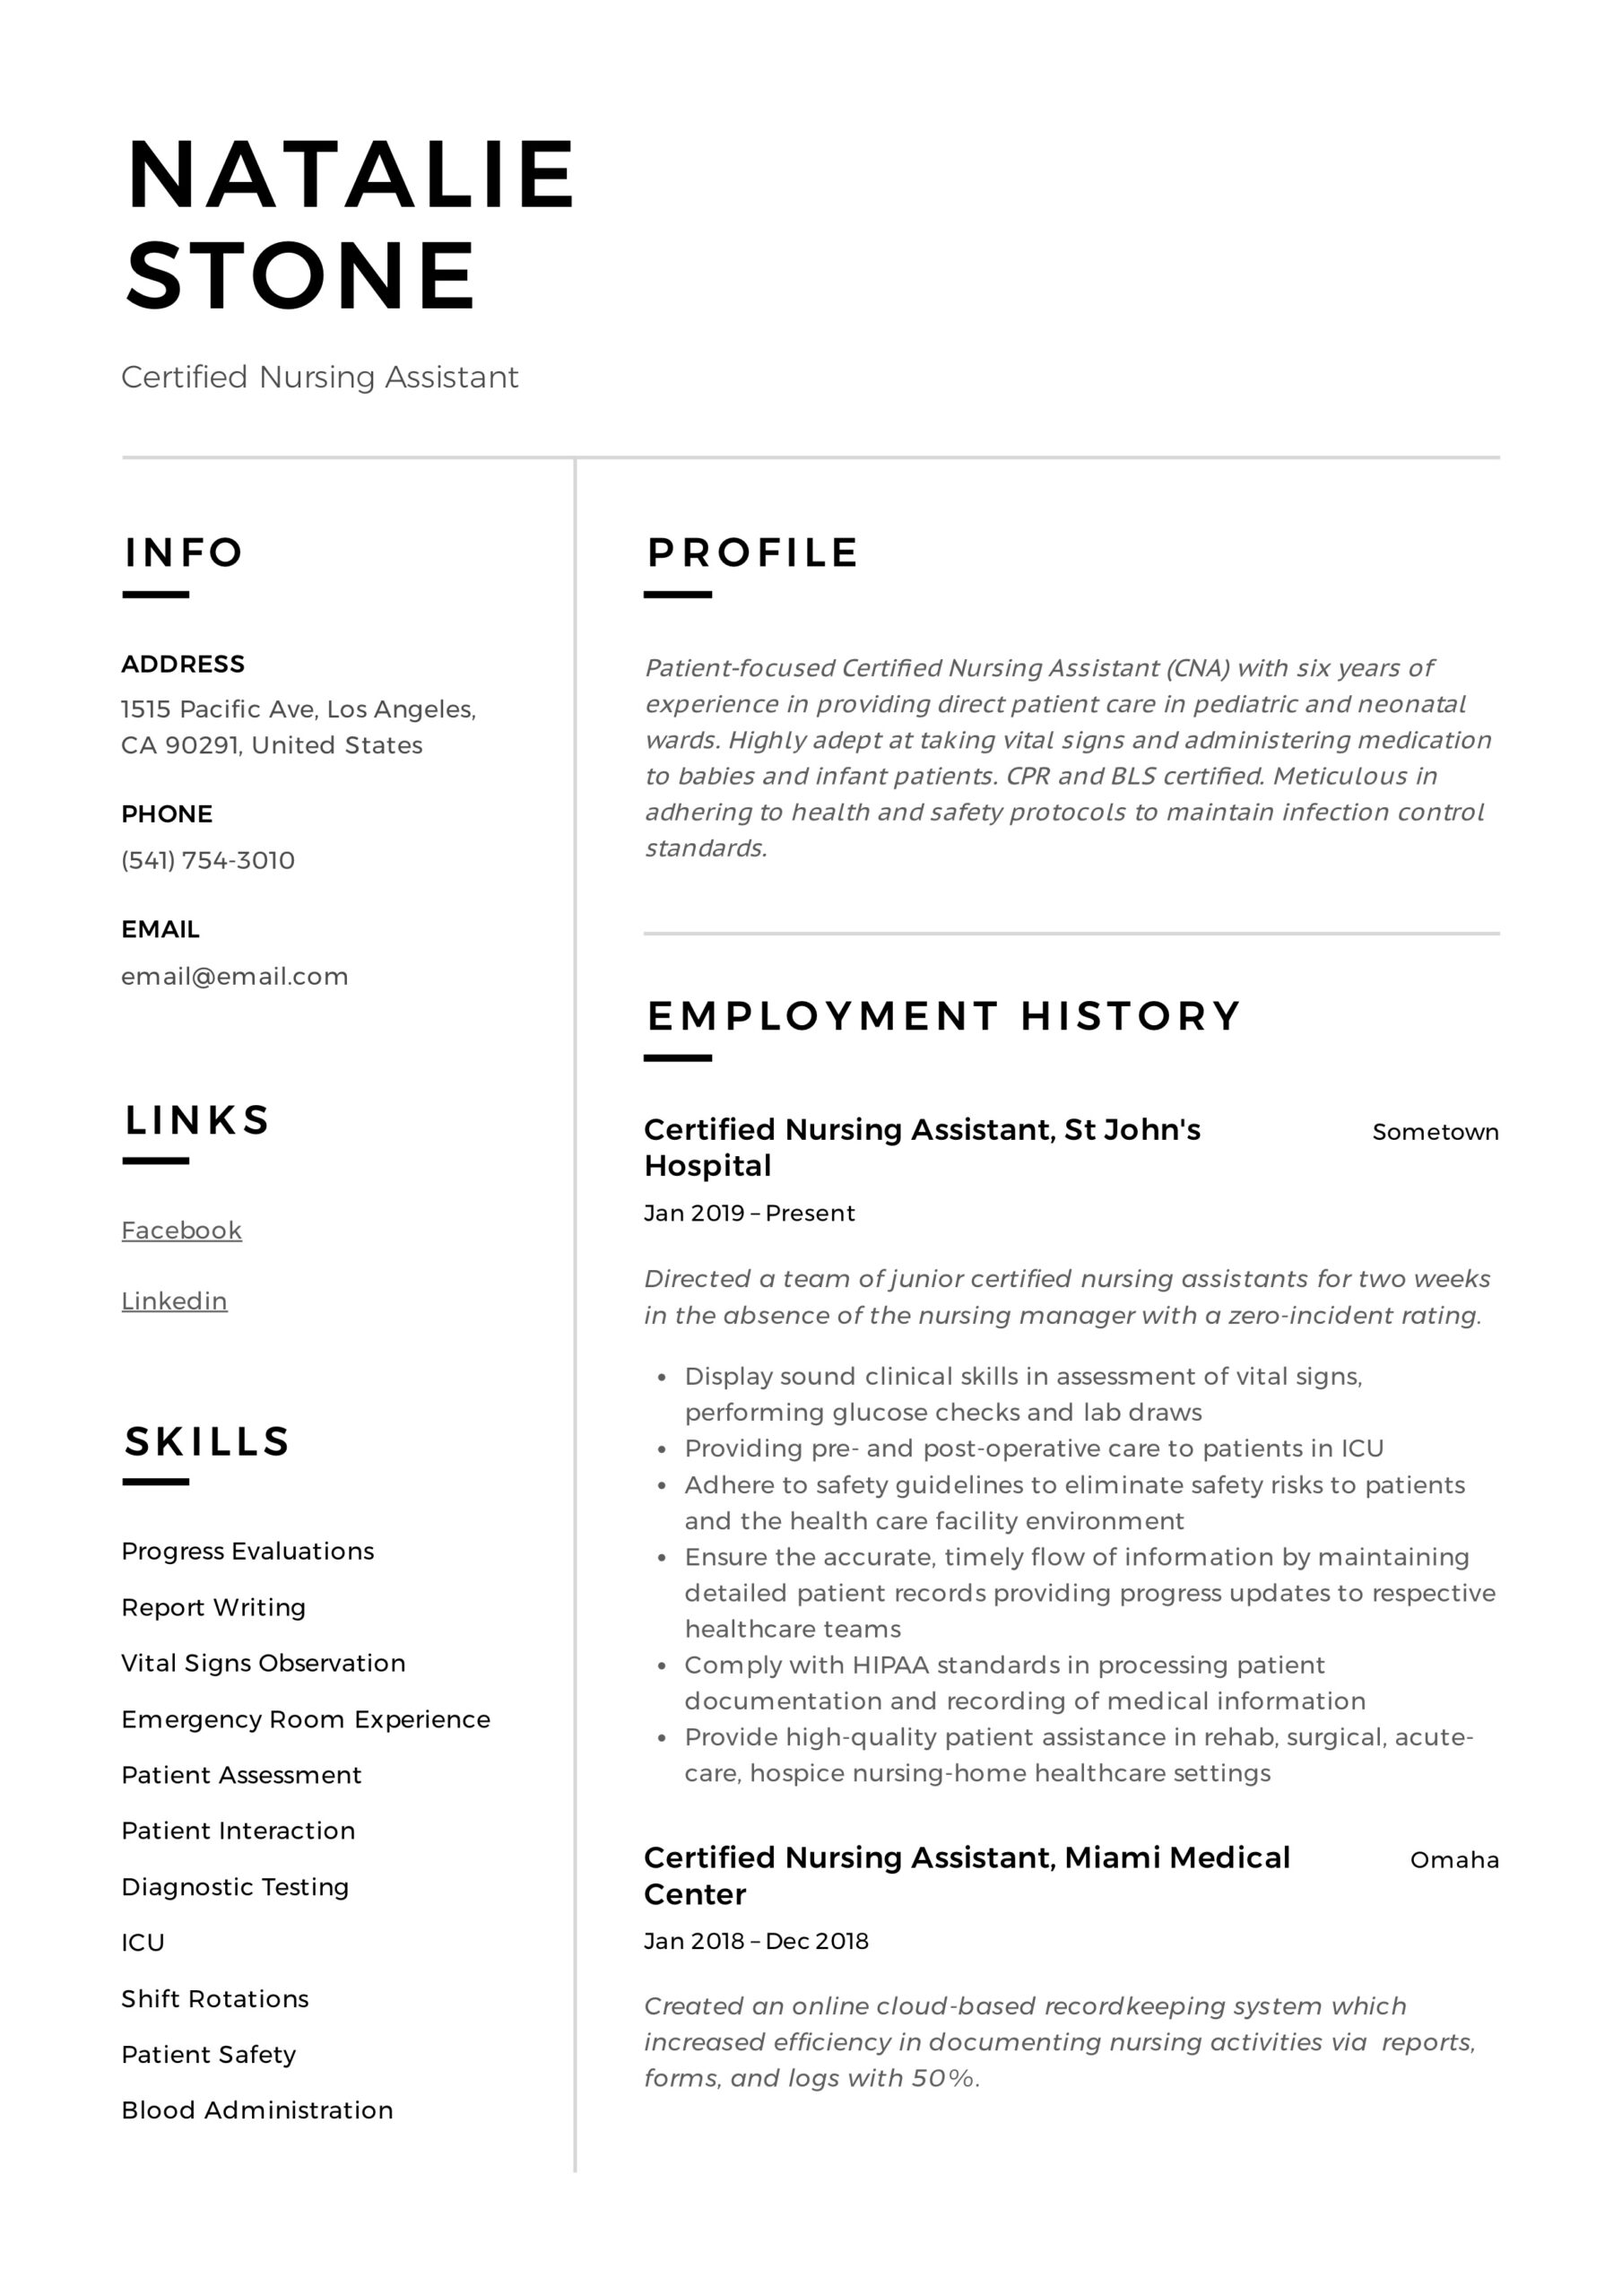 certified nursing assistant resume writing guide templates entry level example of skills Resume Entry Level Certified Nursing Assistant Resume